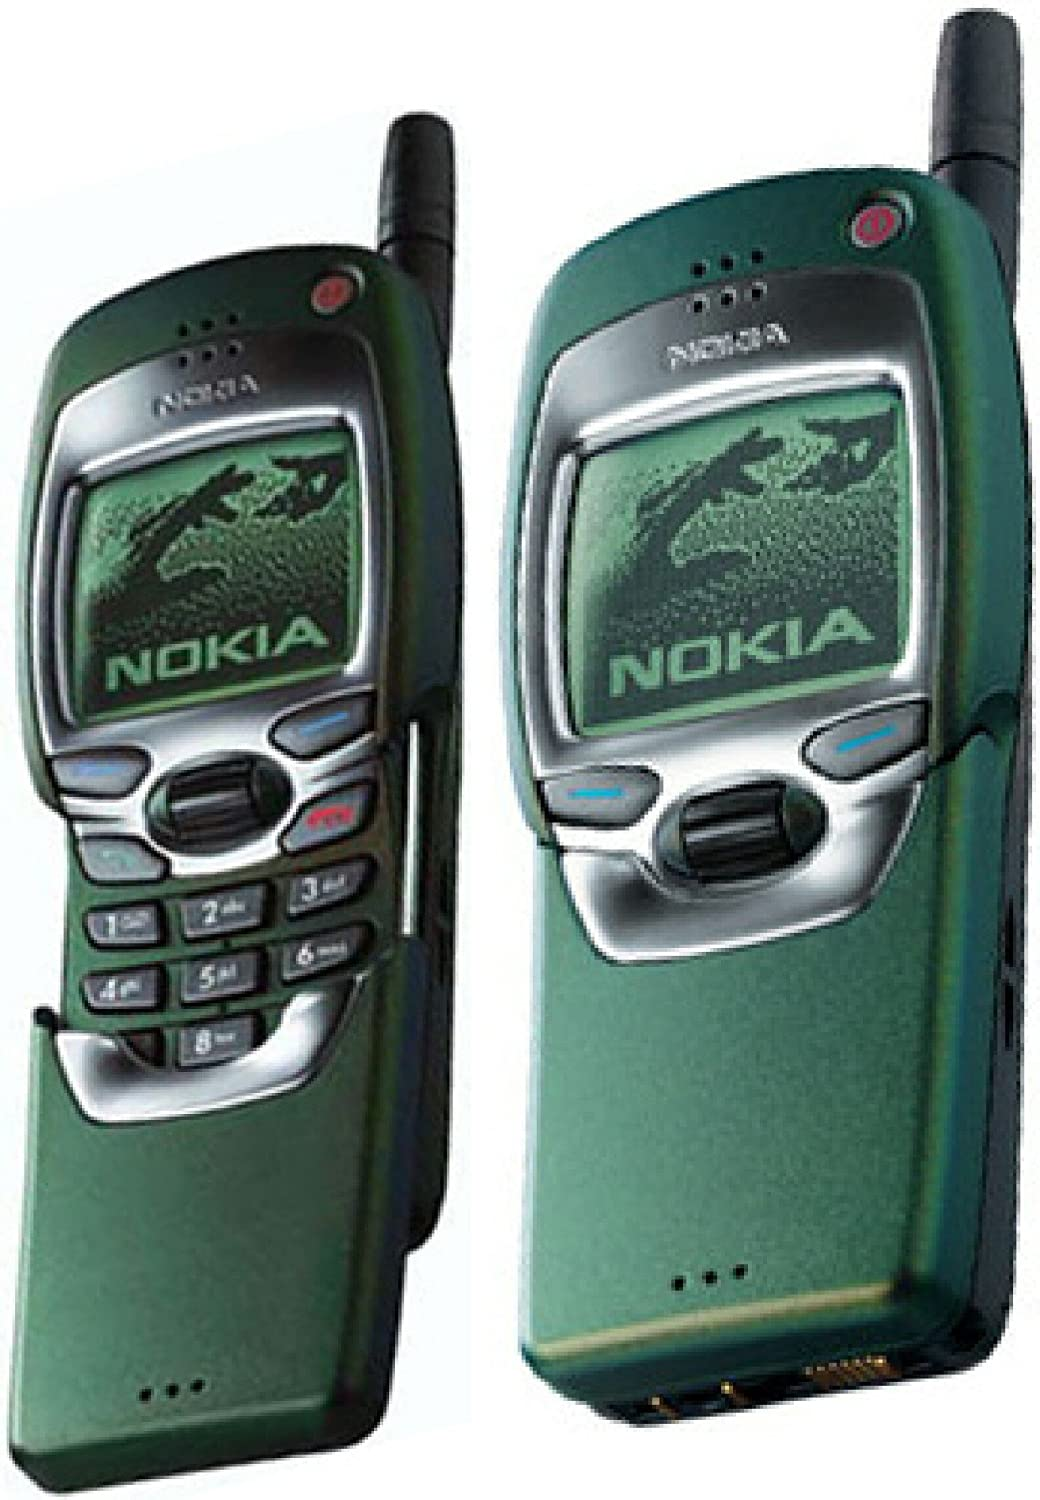 Nokia 7110 price in indian rupees for Matrix mobili